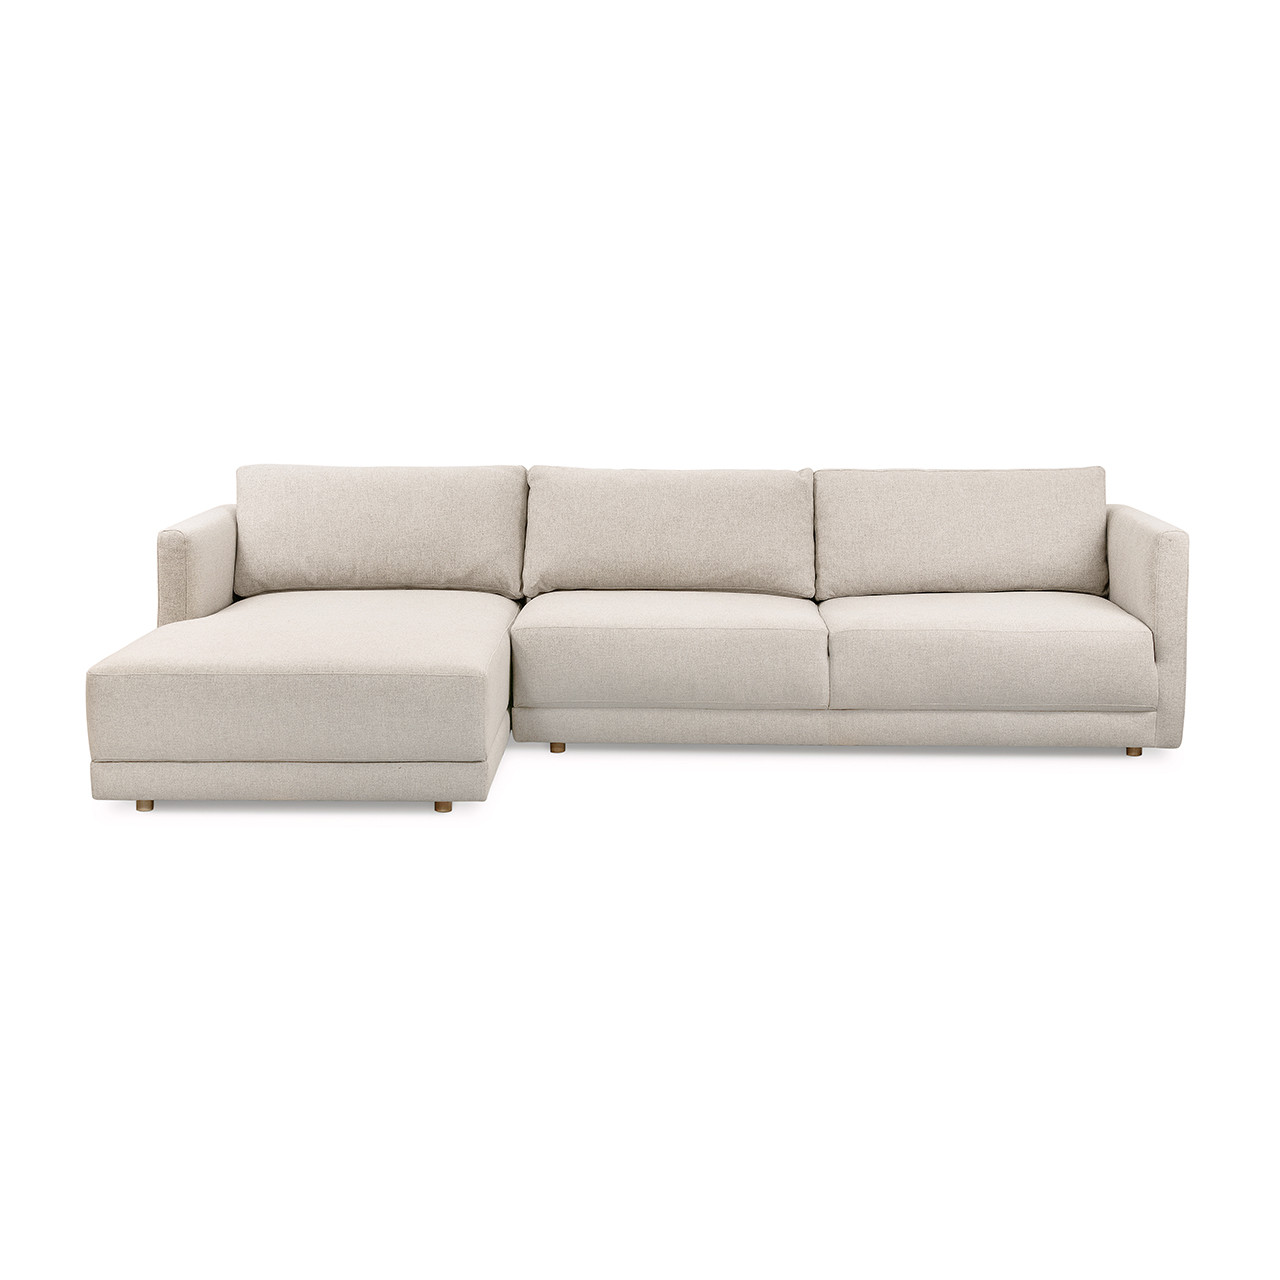 Braxton 2 Pc Sectional - LAF Chaise - CBT JT